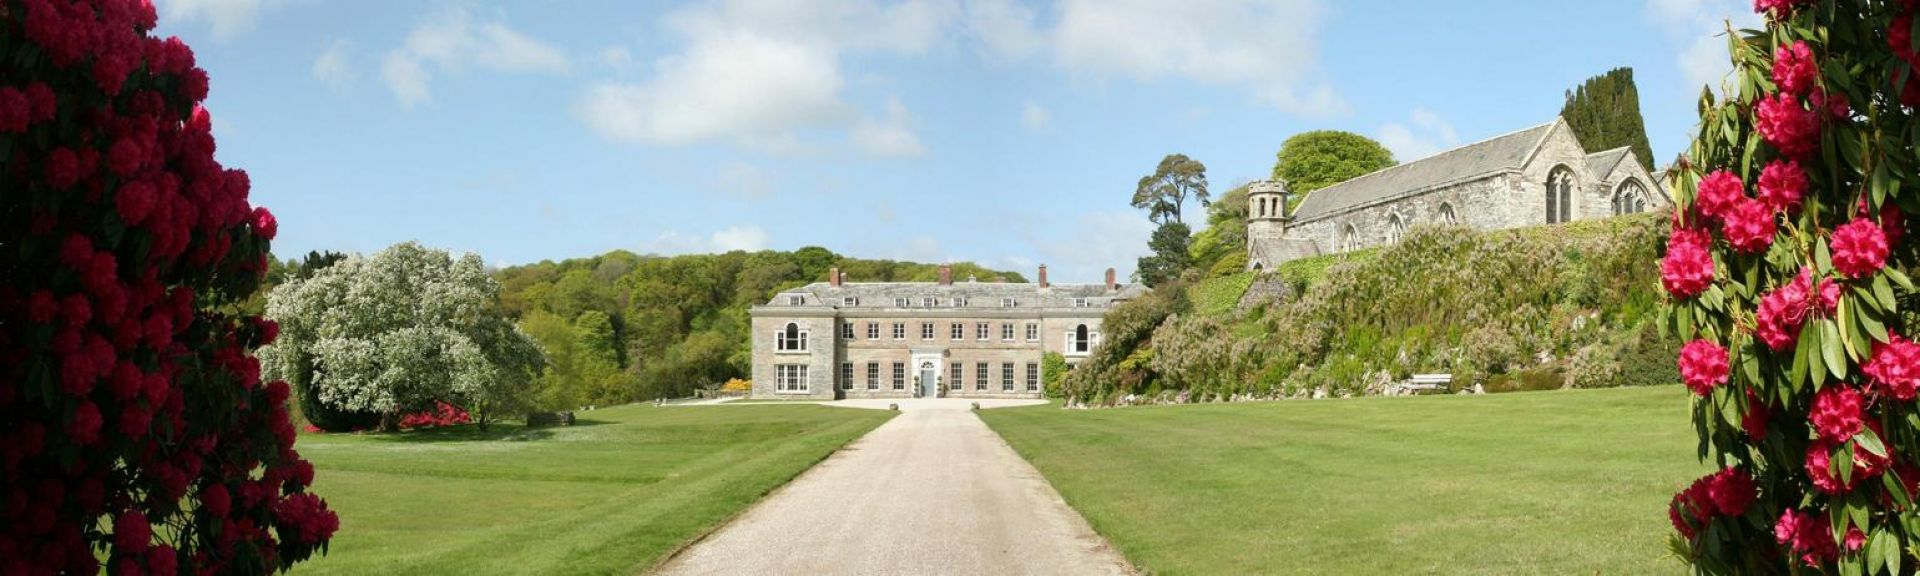 Boconnoc House and Gardens